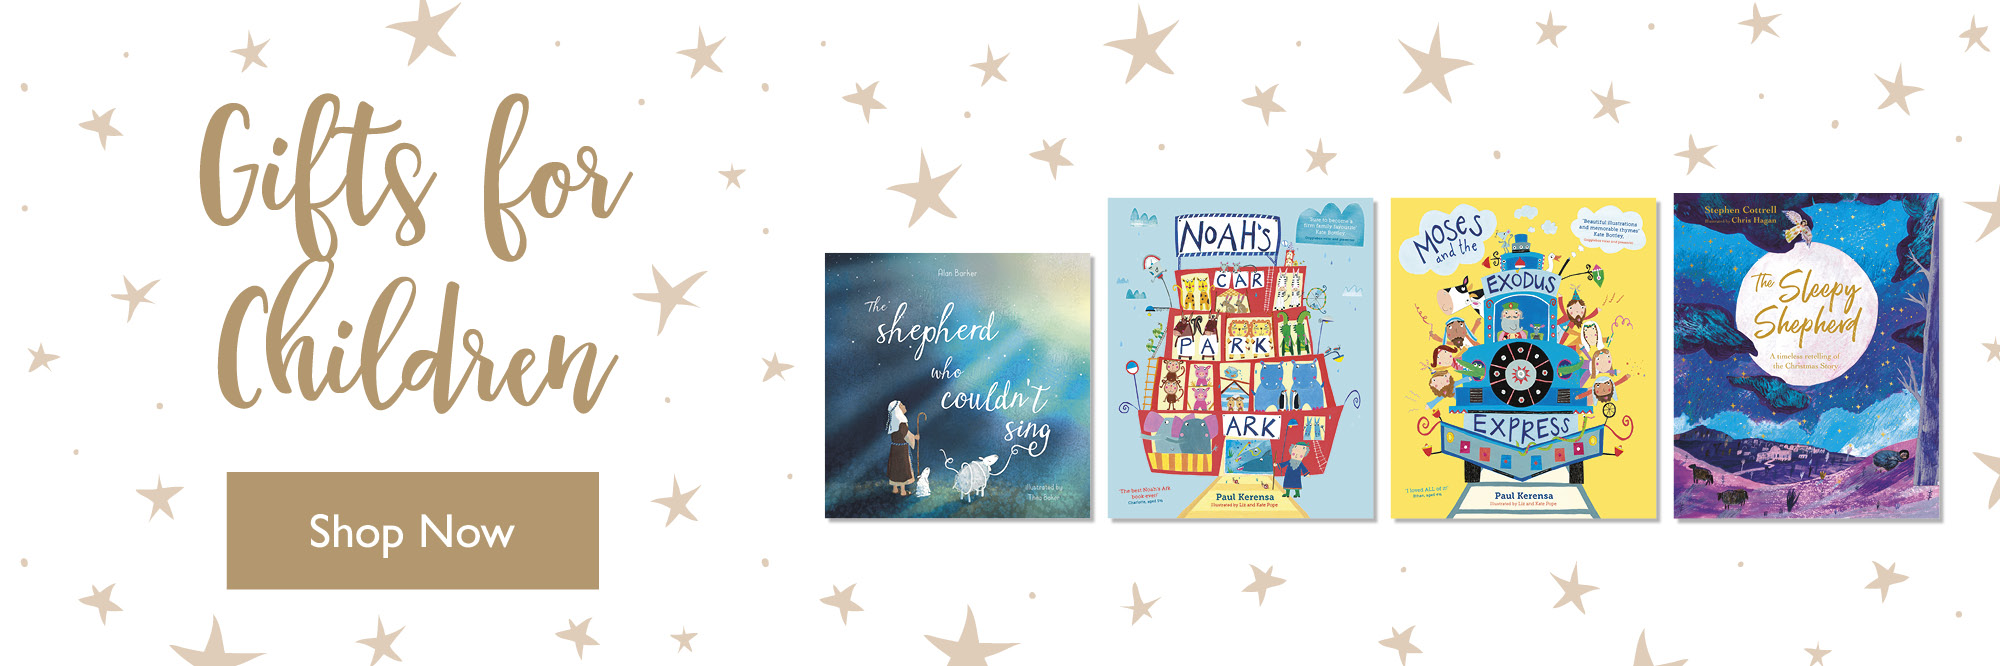 SPCK Christmas Gifts for Children